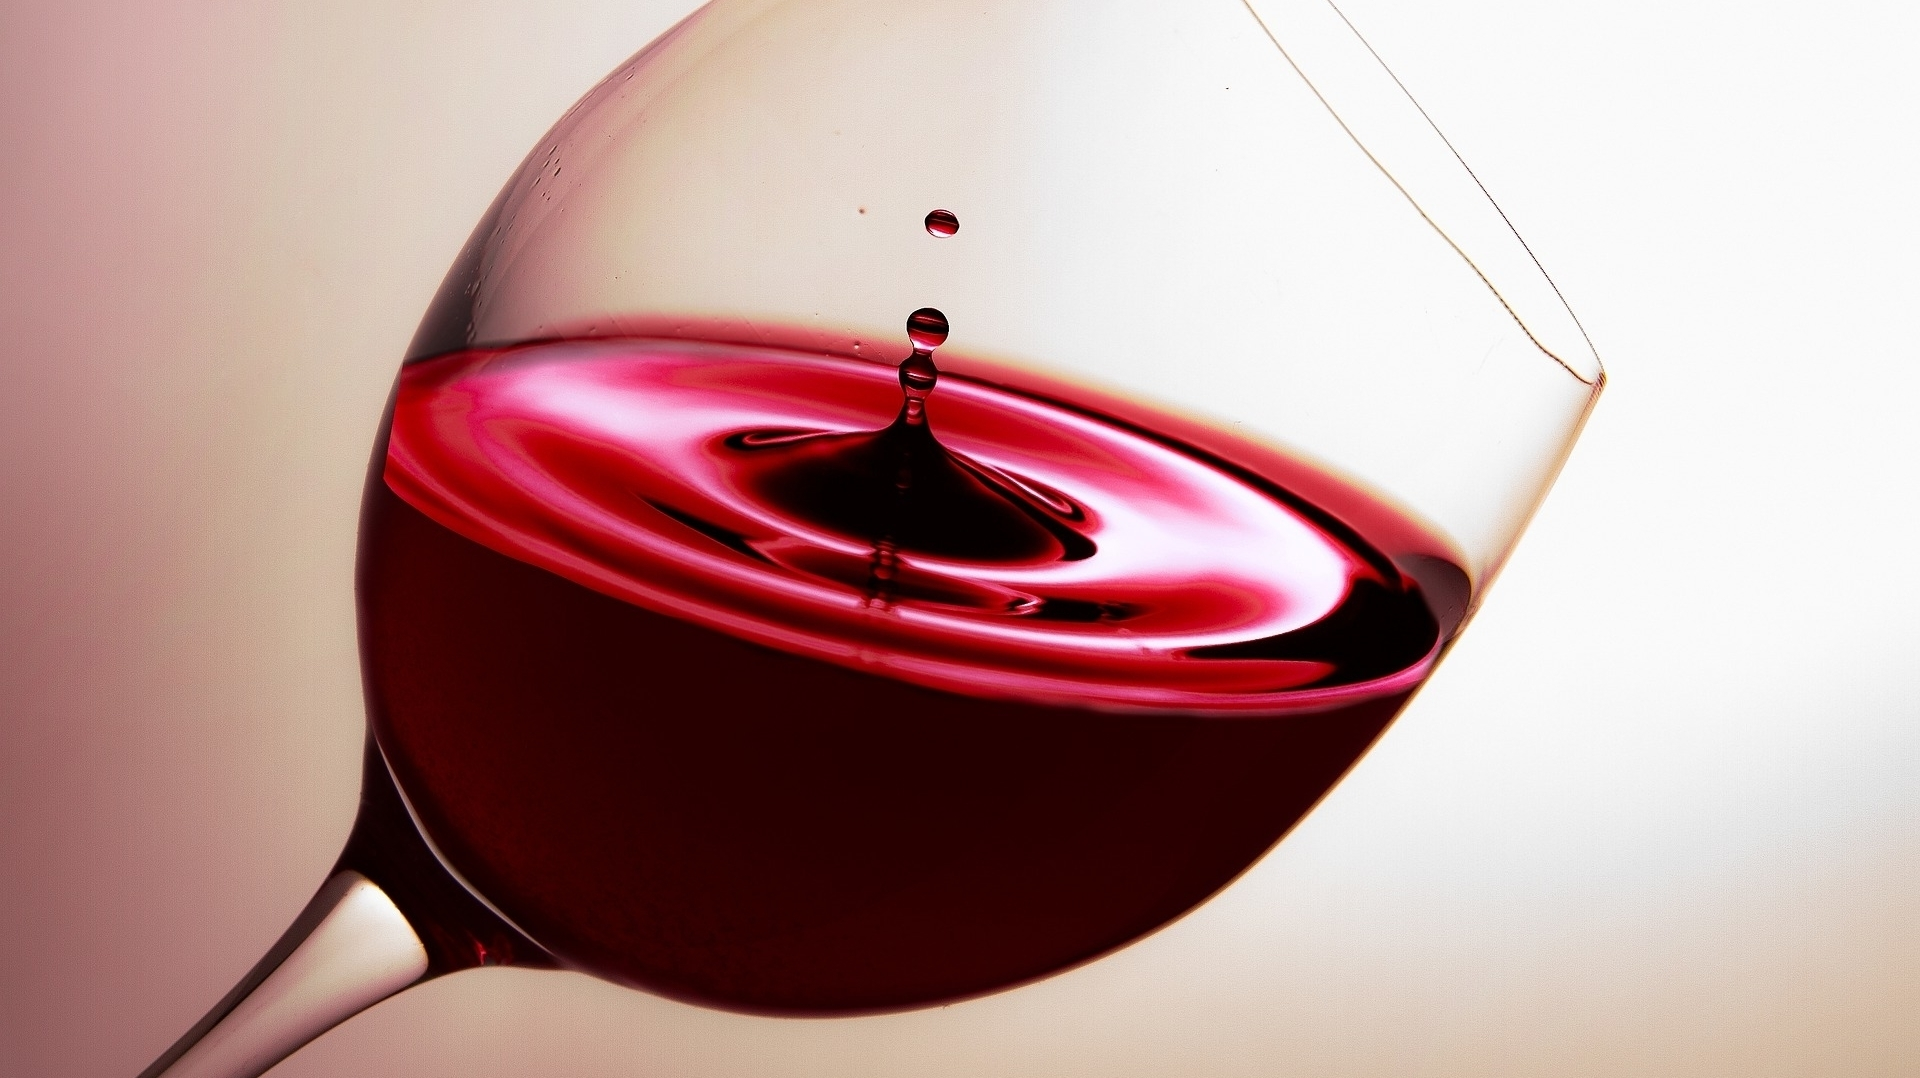 Wine 3 0 brings support for Direct3D 11 on Linux – Tech2